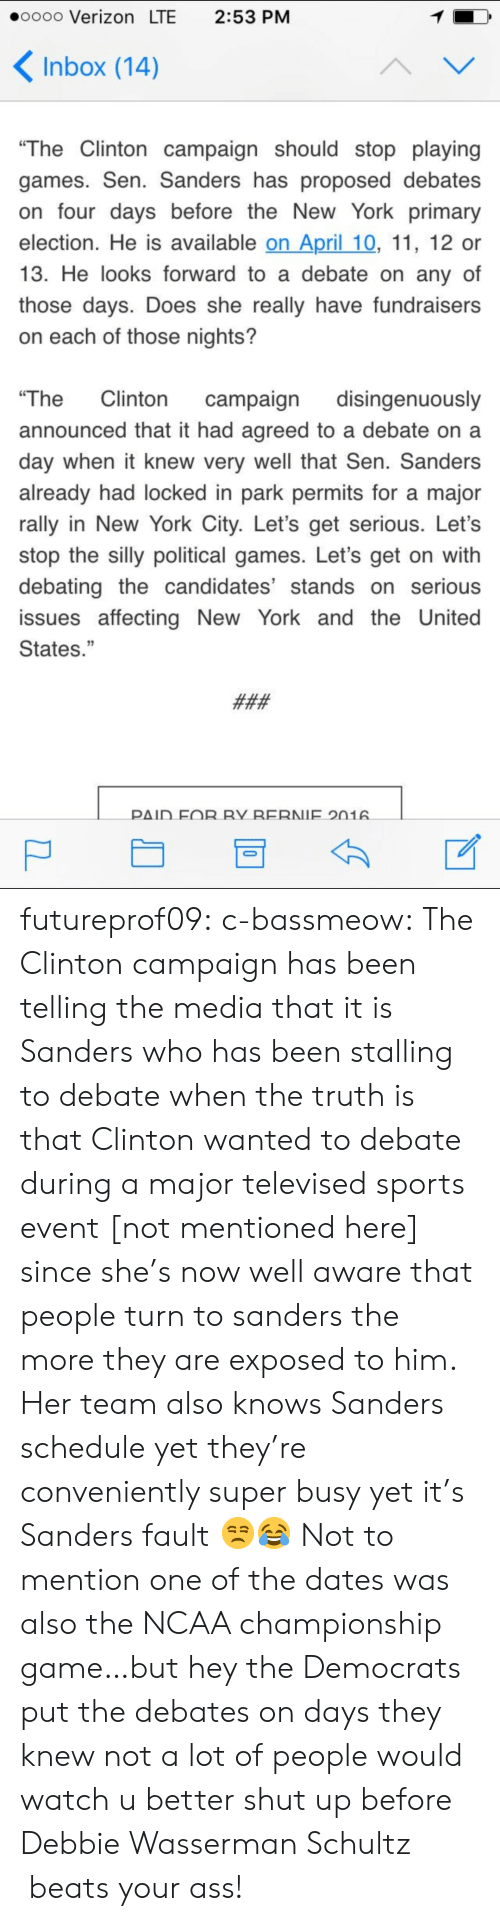 """ncaa championship: oooo Verizon LTE 2:53 PM  Inbox (14)  """"The Clintoncampaign should stop playing  games. Sen. Sanders has proposed debates  on four days before the New York primary  election. He is available on April 10, 11, 12 or  13. He looks forward to a debate on any of  those days. Does she really have fundraisers  on each of those nights?  The Clinton campaign disingenuously  announced that it had agreed to a debate on a  day when it knew very well that Sen. Sanders  already had locked in park permits for a major  rally in New York City. Let's get serious. Let's  stop the silly political games. Let's get on with  debating the candidates stands on seriou:S  issues affecting New York and the United  States.""""  ΡΔ1D EOR RY RERNIE 201 futureprof09:  c-bassmeow:  The Clinton campaign has been telling the media that it is Sanders who has been stalling to debate when the truth is that Clinton wanted to debate during a major televised sports event [not mentioned here] since she's now well aware that people turn to sanders the more they are exposed to him. Her team also knows Sanders schedule yet they're conveniently super busy yet it's Sanders fault 😒😂  Not to mention one of the dates was also the NCAA championship game…but hey the Democrats put the debates on days they knew not a lot of people would watch   u better shut up before Debbie Wasserman Schultz beats your ass!"""